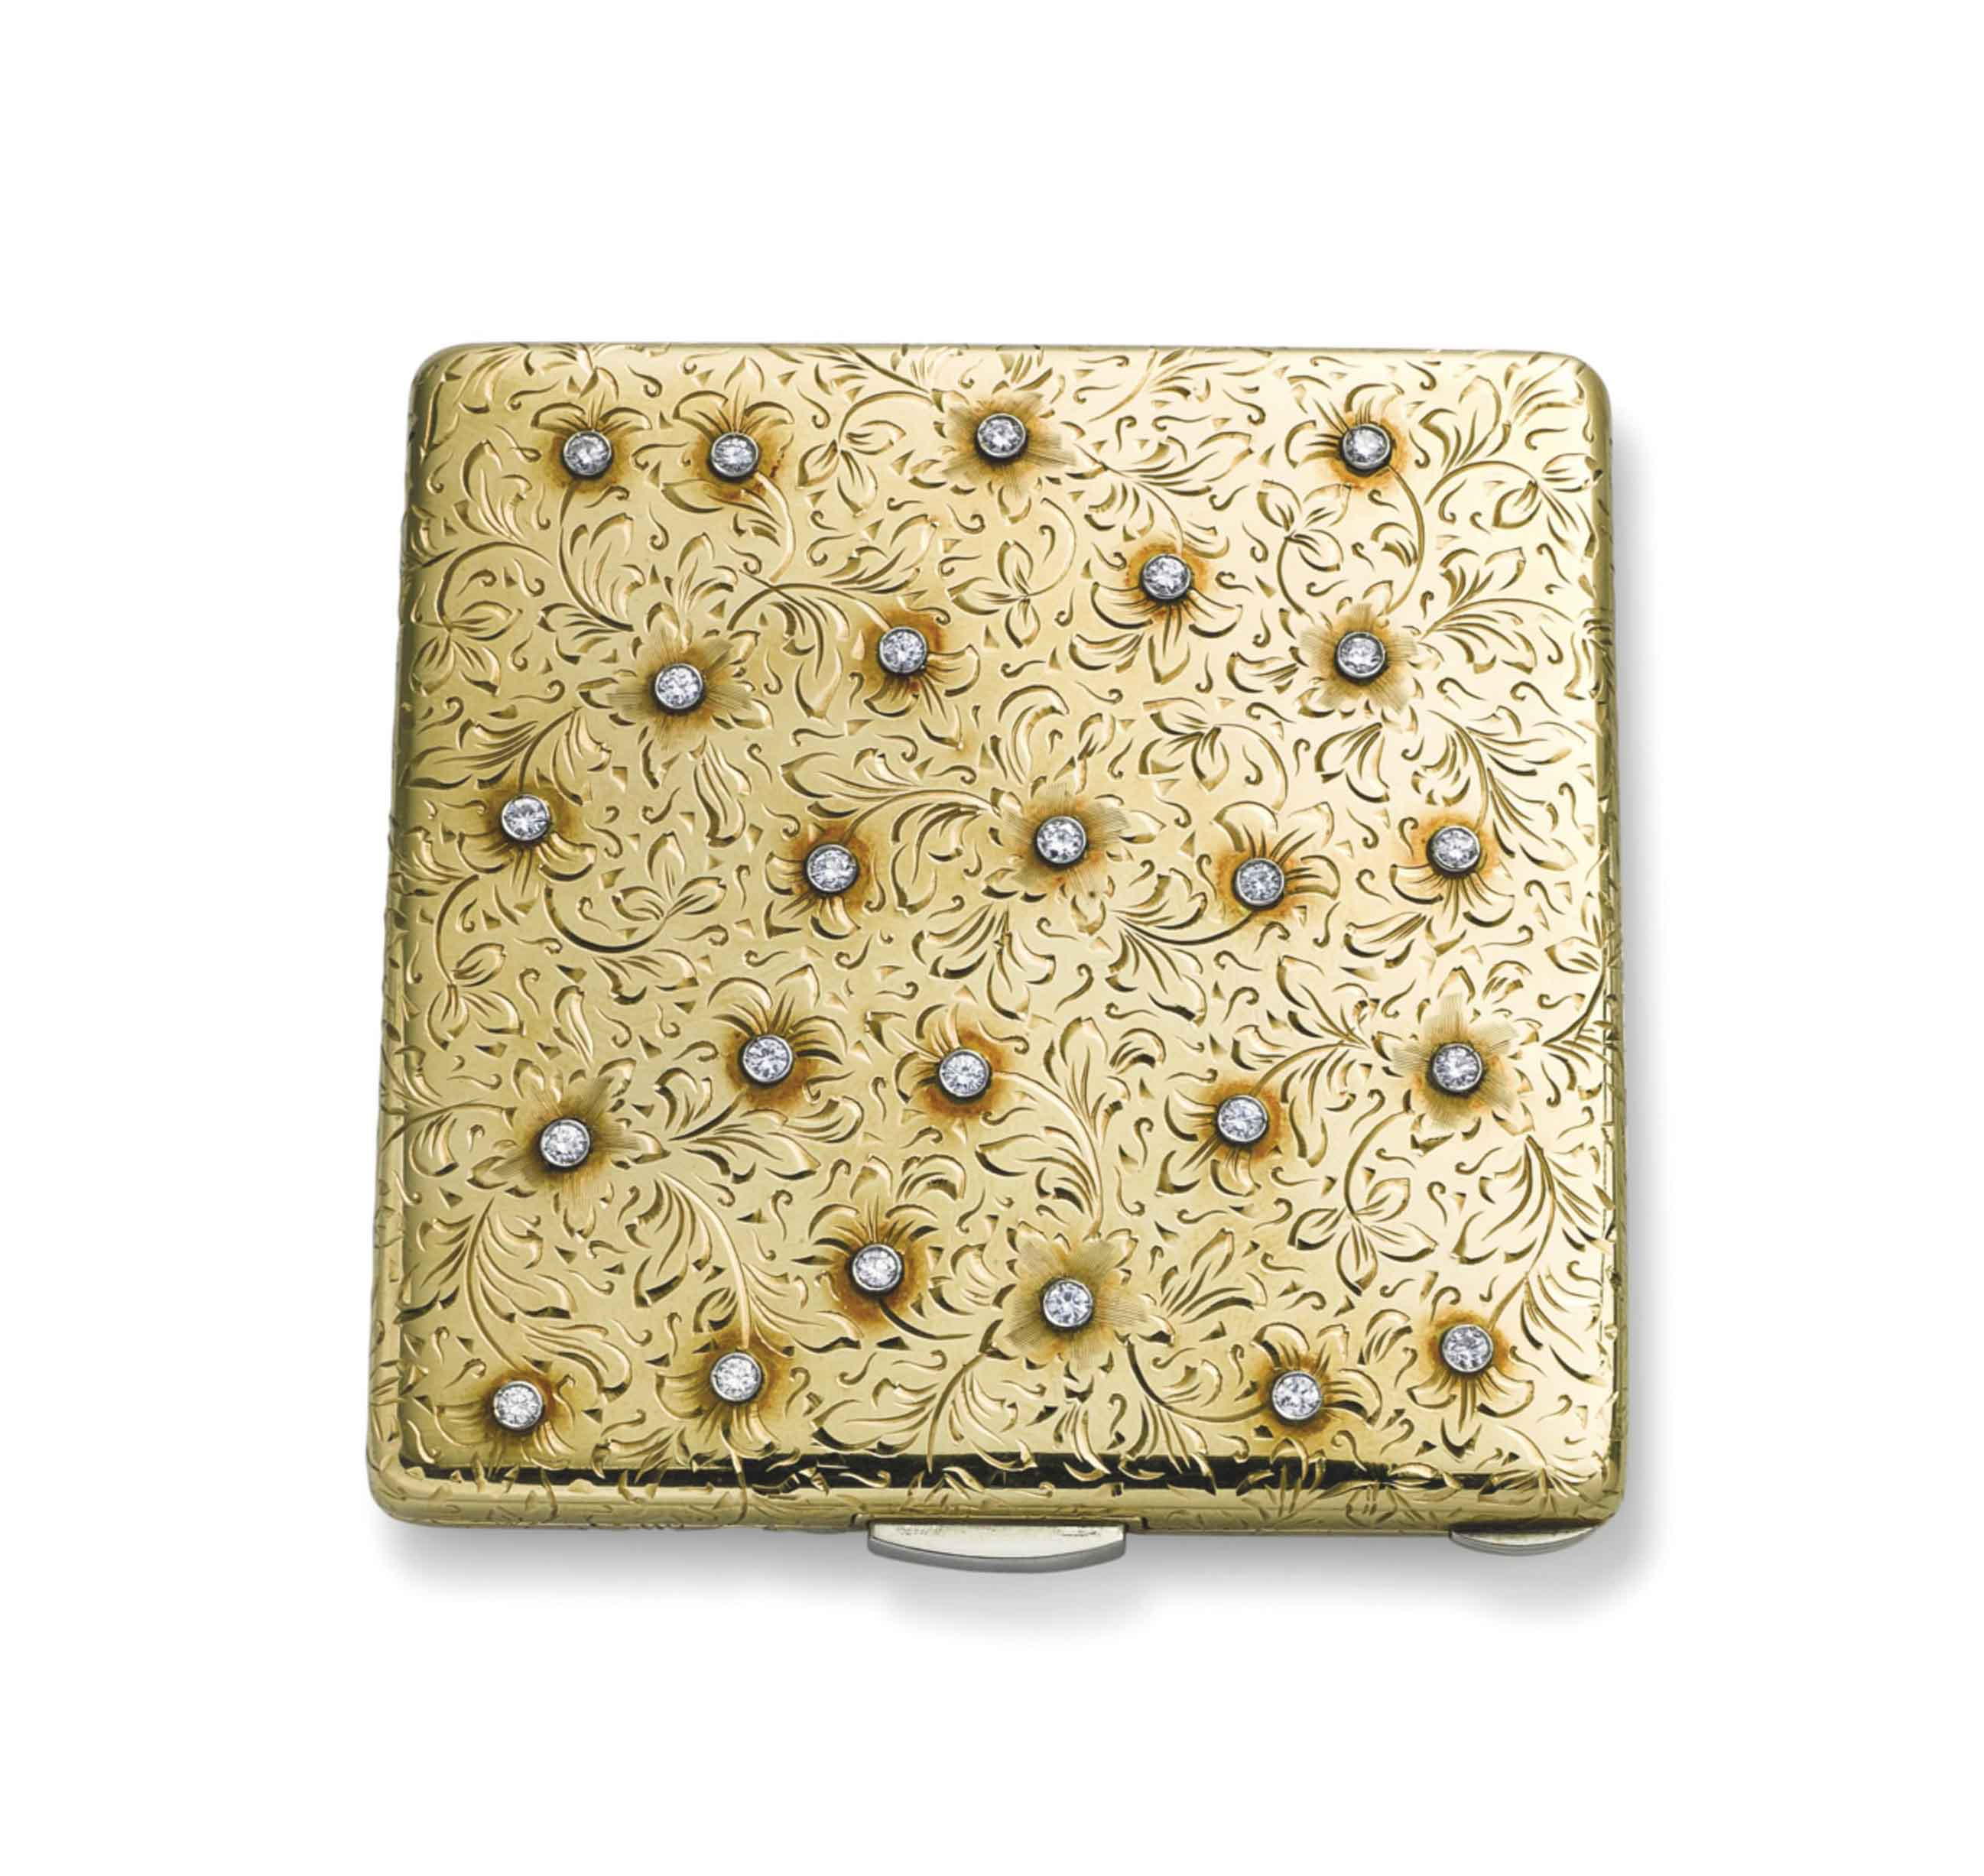 A GOLD AND DIAMOND COMPACT